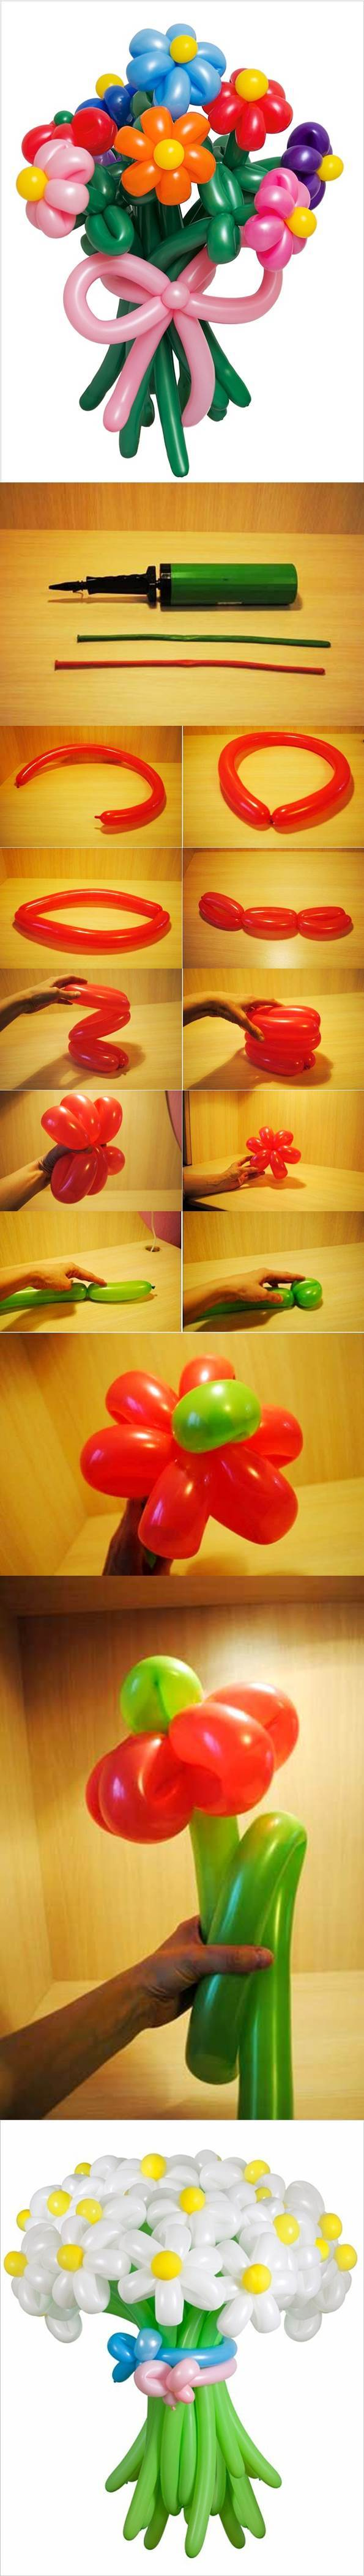 DIY Balloon Flowers2